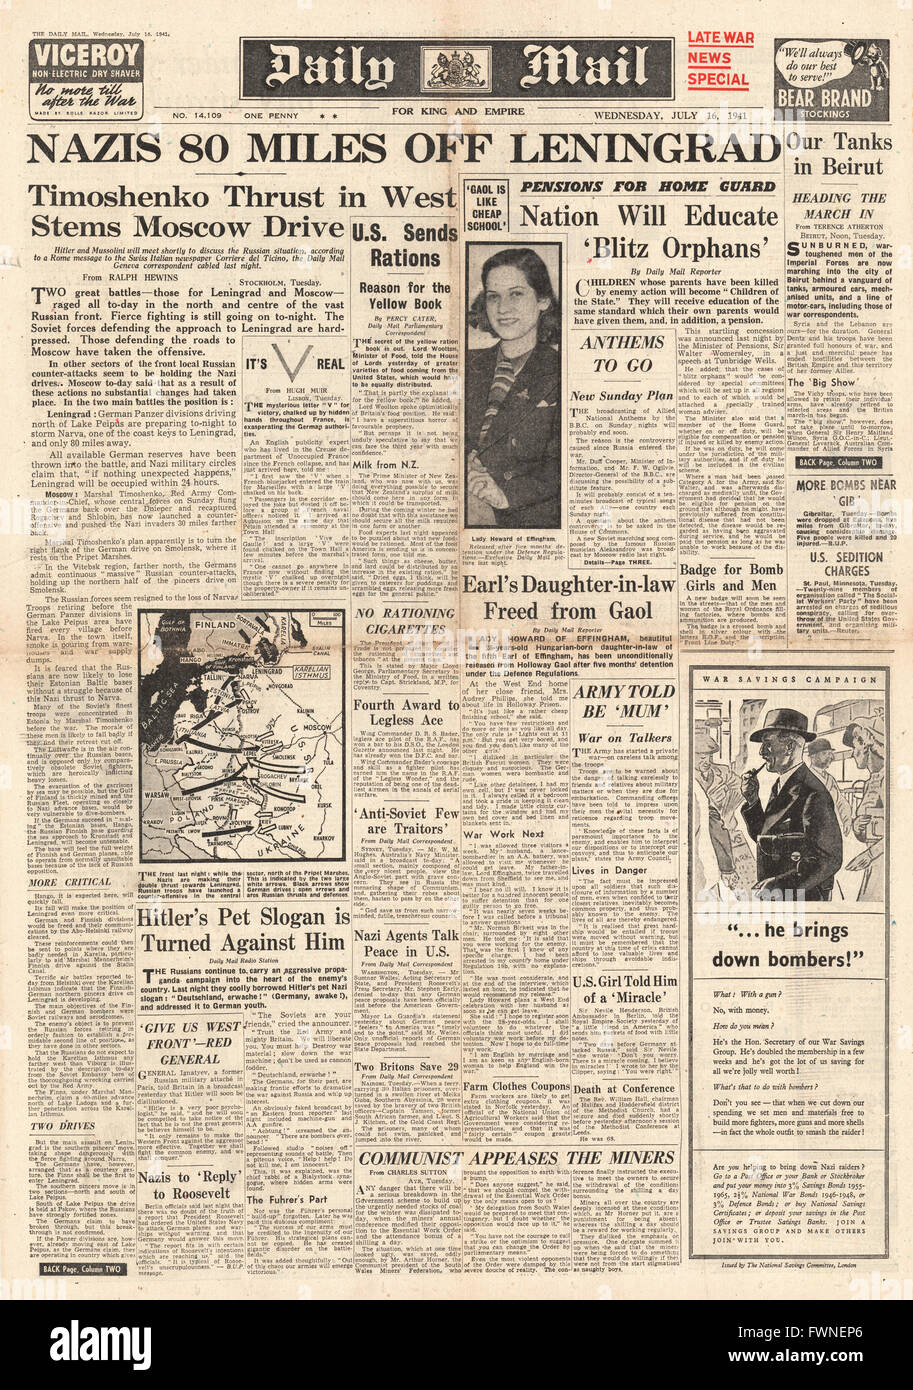 1941 front page Daily Mail German Forces 80 Miles From Leningrad Stock Photo